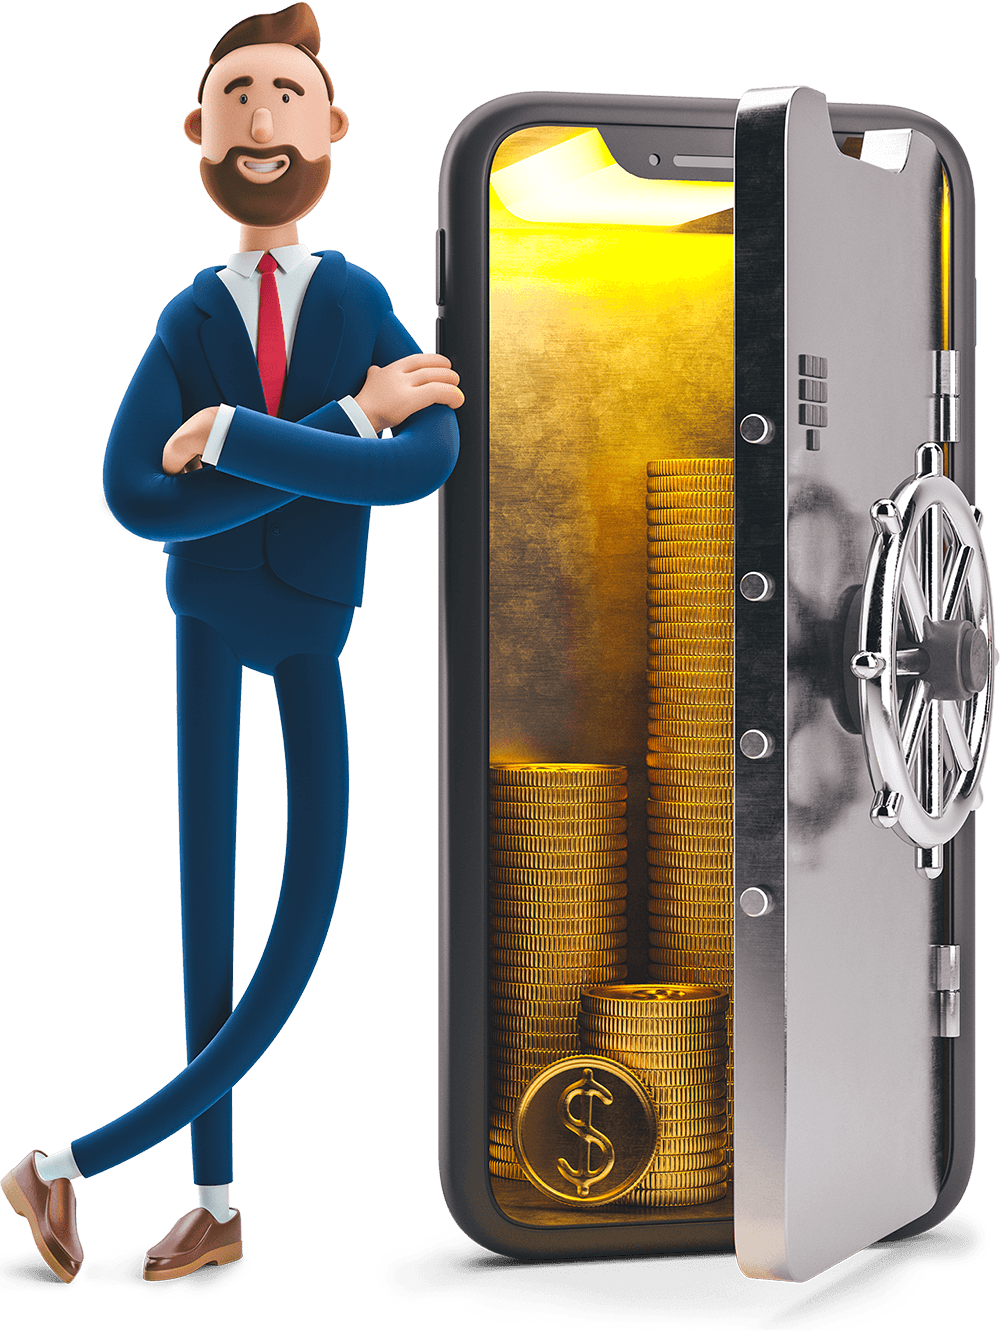 Billy leaning on a bank safe